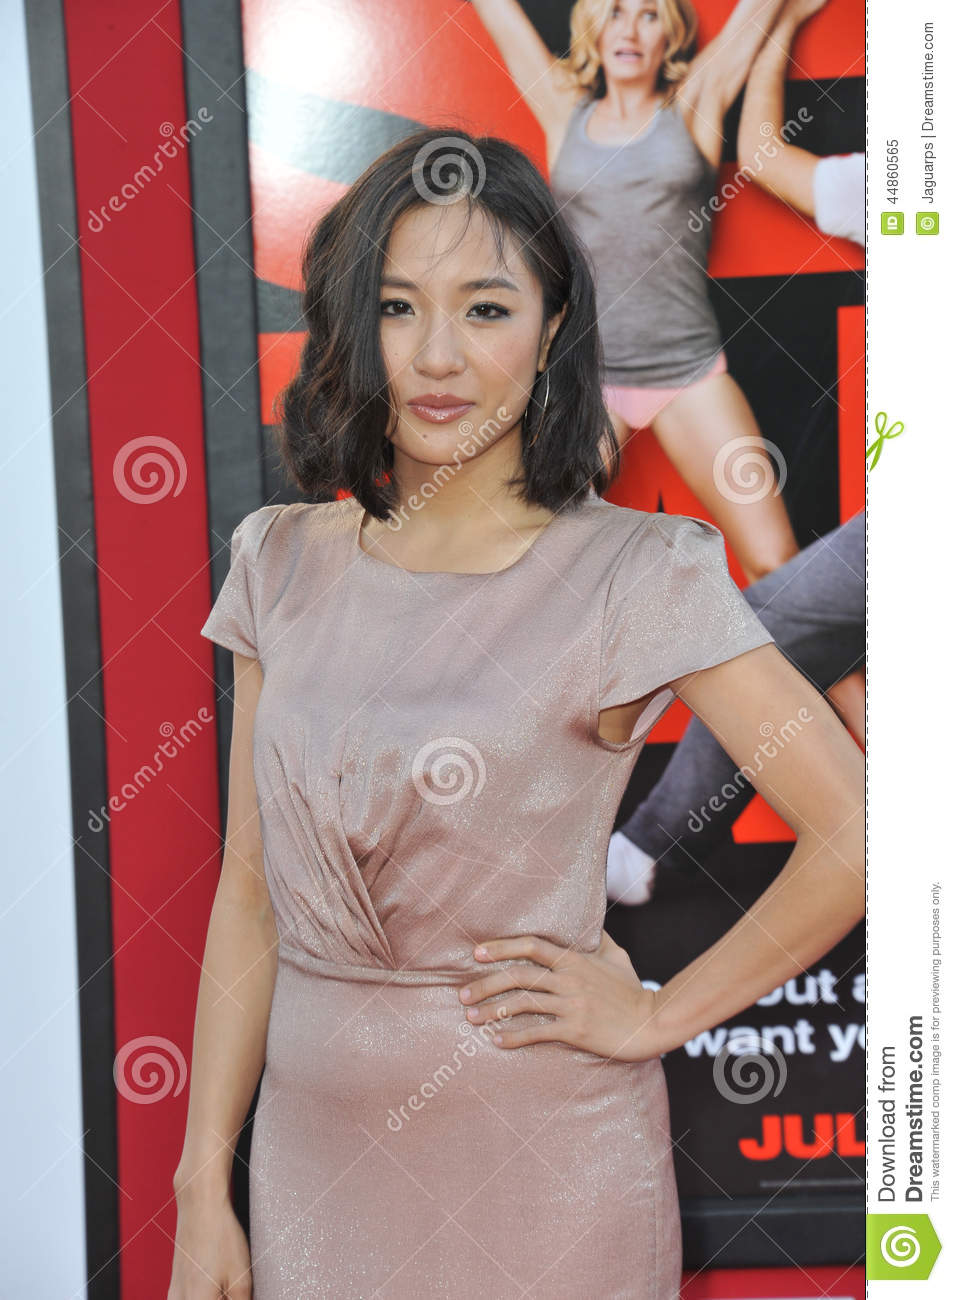 constance wu singing